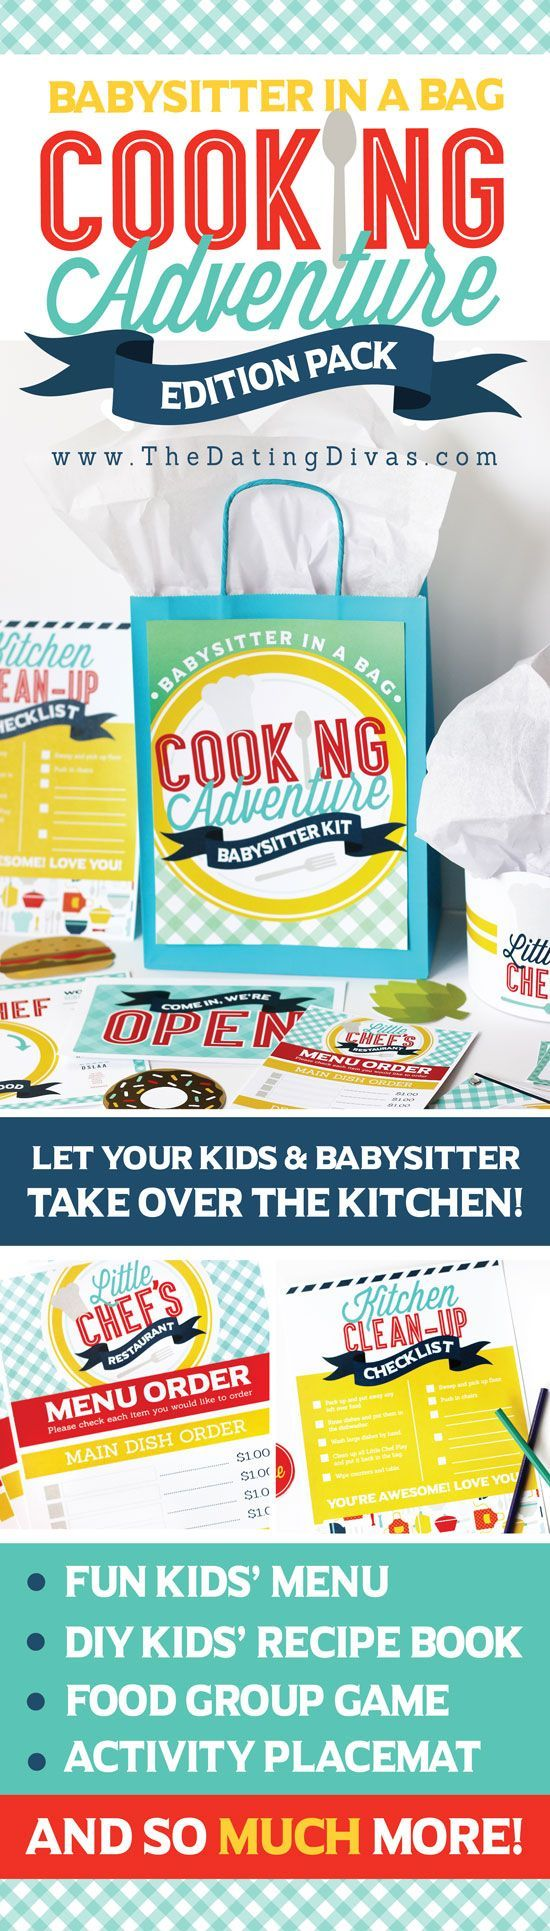 #Ad There are a ton of fun things included in the pack for the kiddos to do like...  Babysitter Instructions - so you can leave home worry free! Printable Embellishments - to decorate the bag. Kids' Mini Recipe Book - oven recipes and non-oven recipes to keep everyone safe. DIY Kids' Chef Hat - because all great chefs need a white hat! Matching Food Card Game - a new game perfect for kids of all ages. Printable Activity Placemat - perfect for entertaining those kiddos while they wait for…